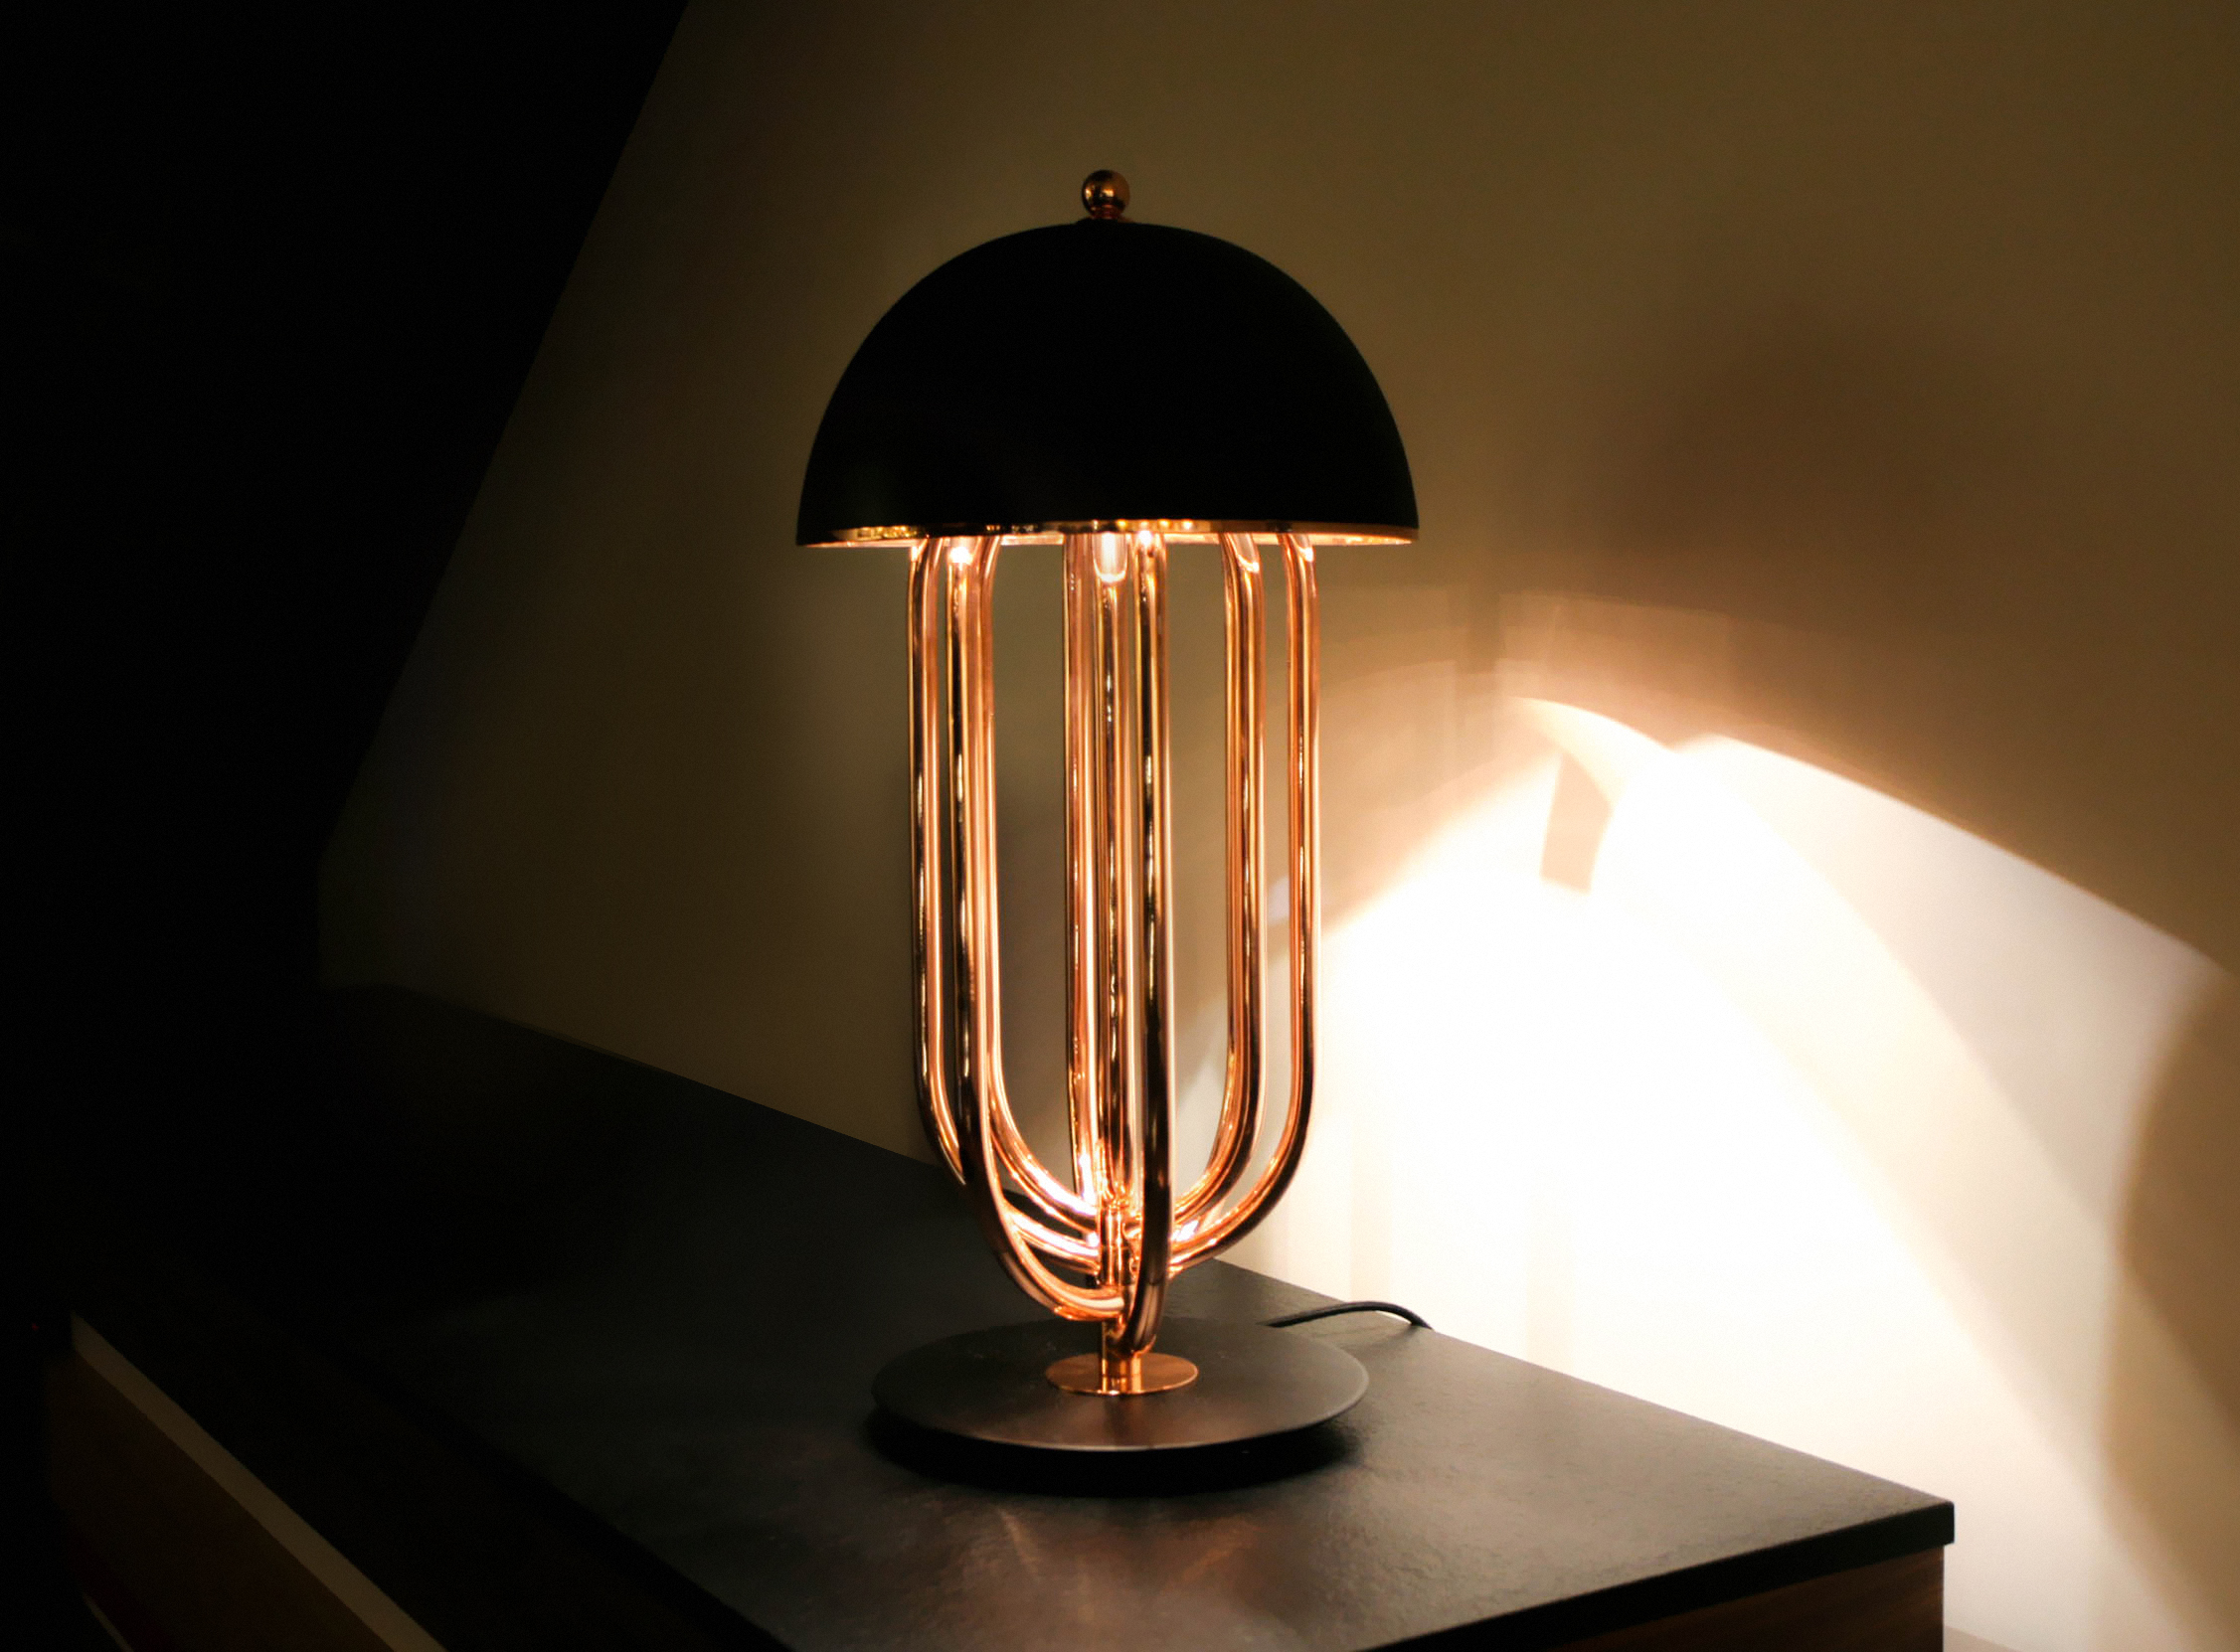 turner table lamp Add Luxury To Your Living Room With Turner Table Lamp Add Luxury To Your Living Room With Turner Table Lamp 4